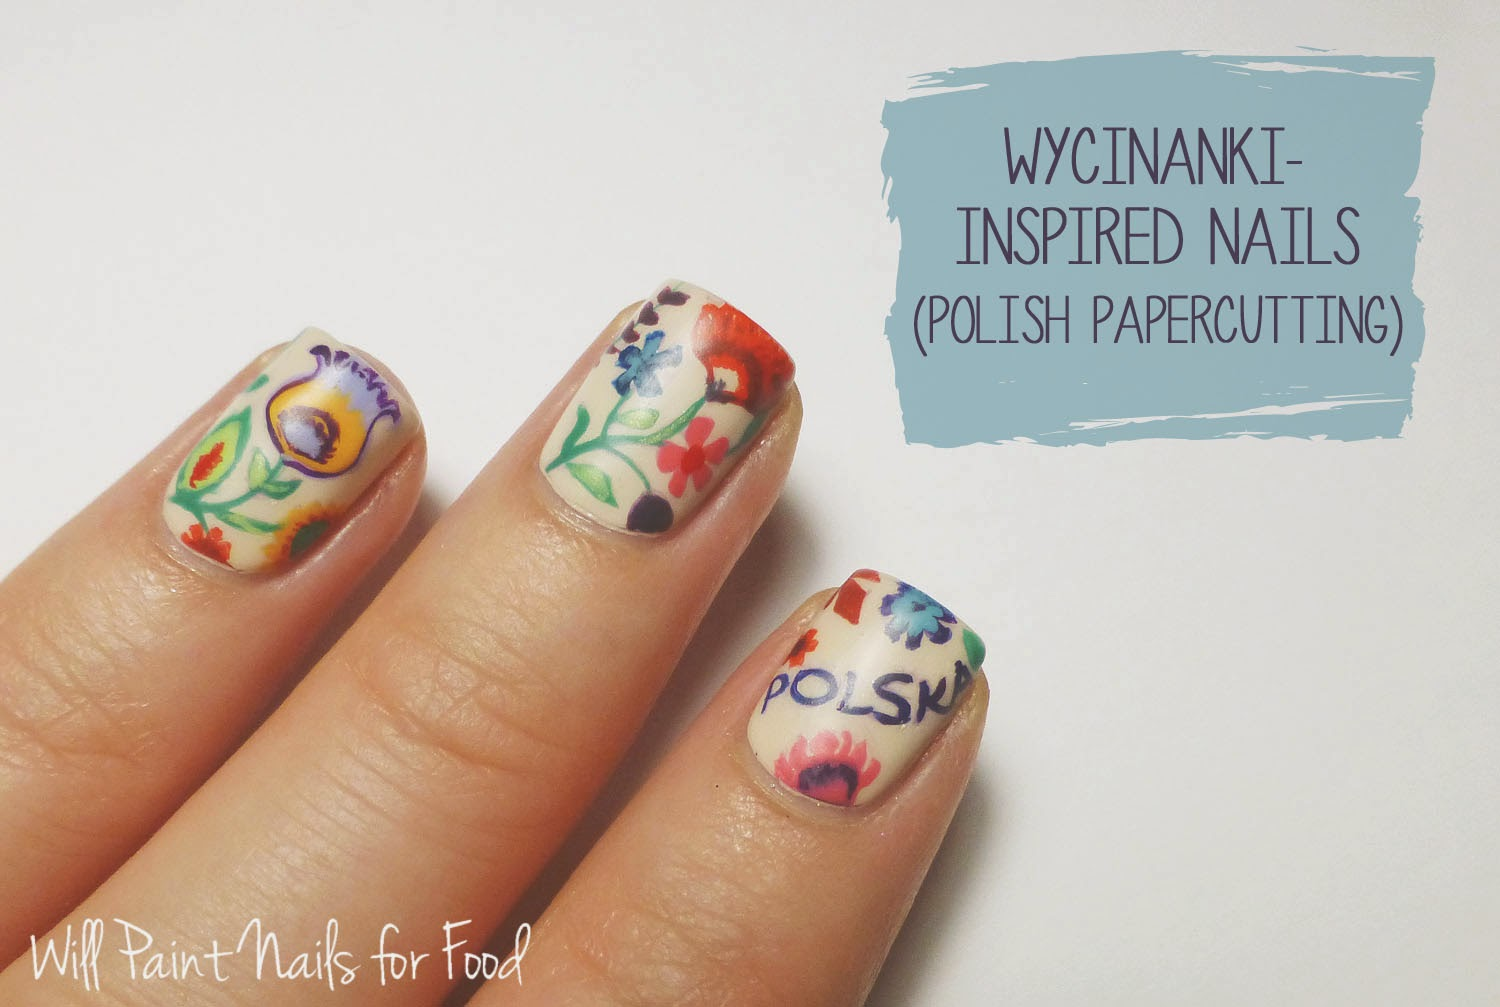 Wycinanki-inspired freehand nail art